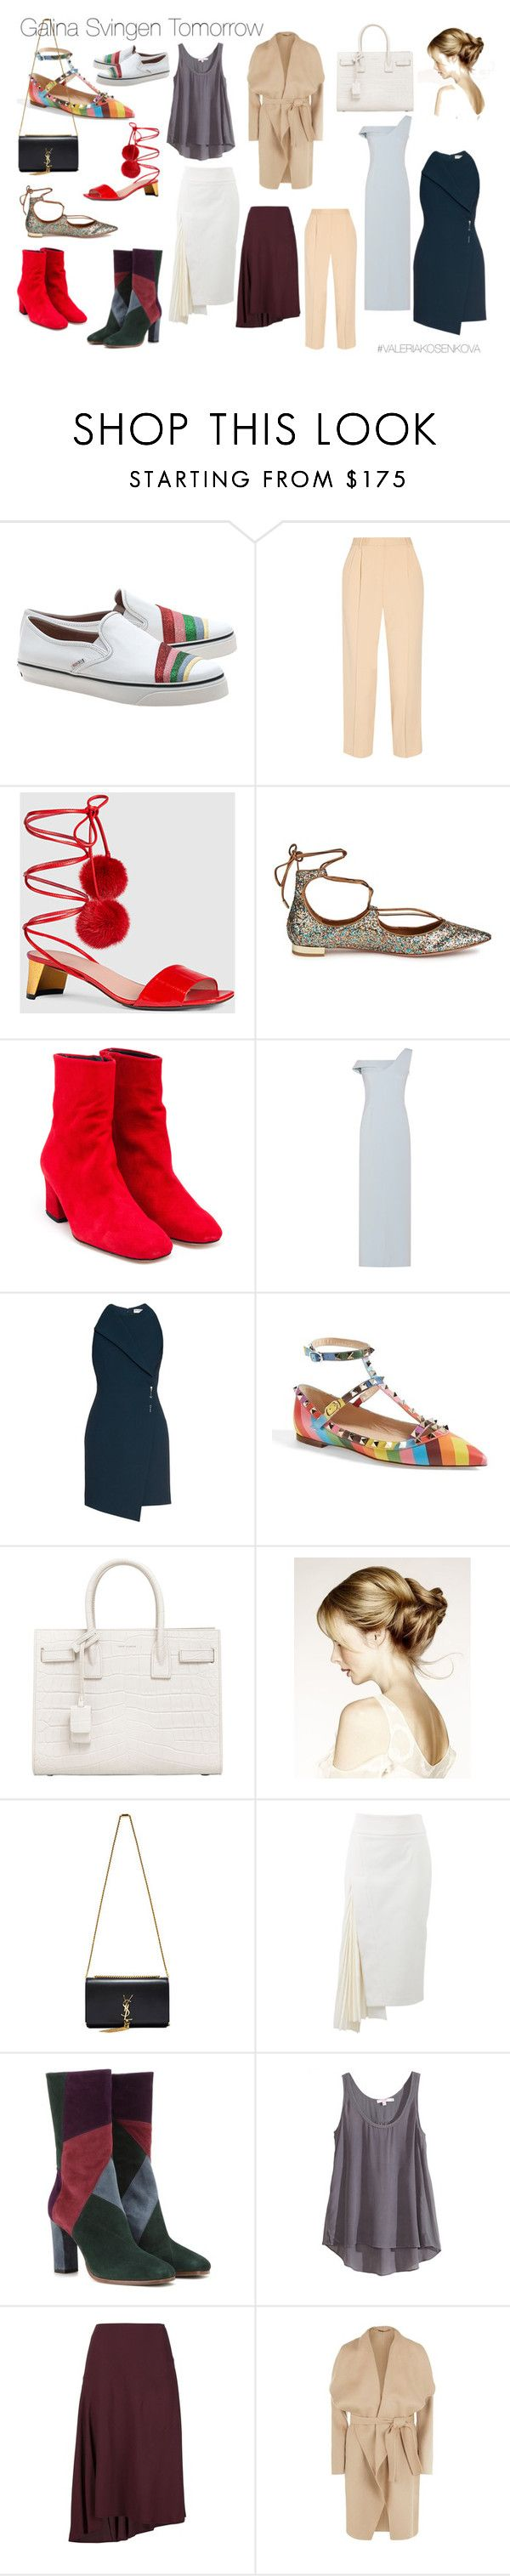 GS Tomorrow by m-elle-v on Polyvore featuring мода, Balenciaga, Calypso St. Barth, BOSS Hugo Boss, Marni, Brunello Cucinelli, The Row, Etro, Valentino and Gucci